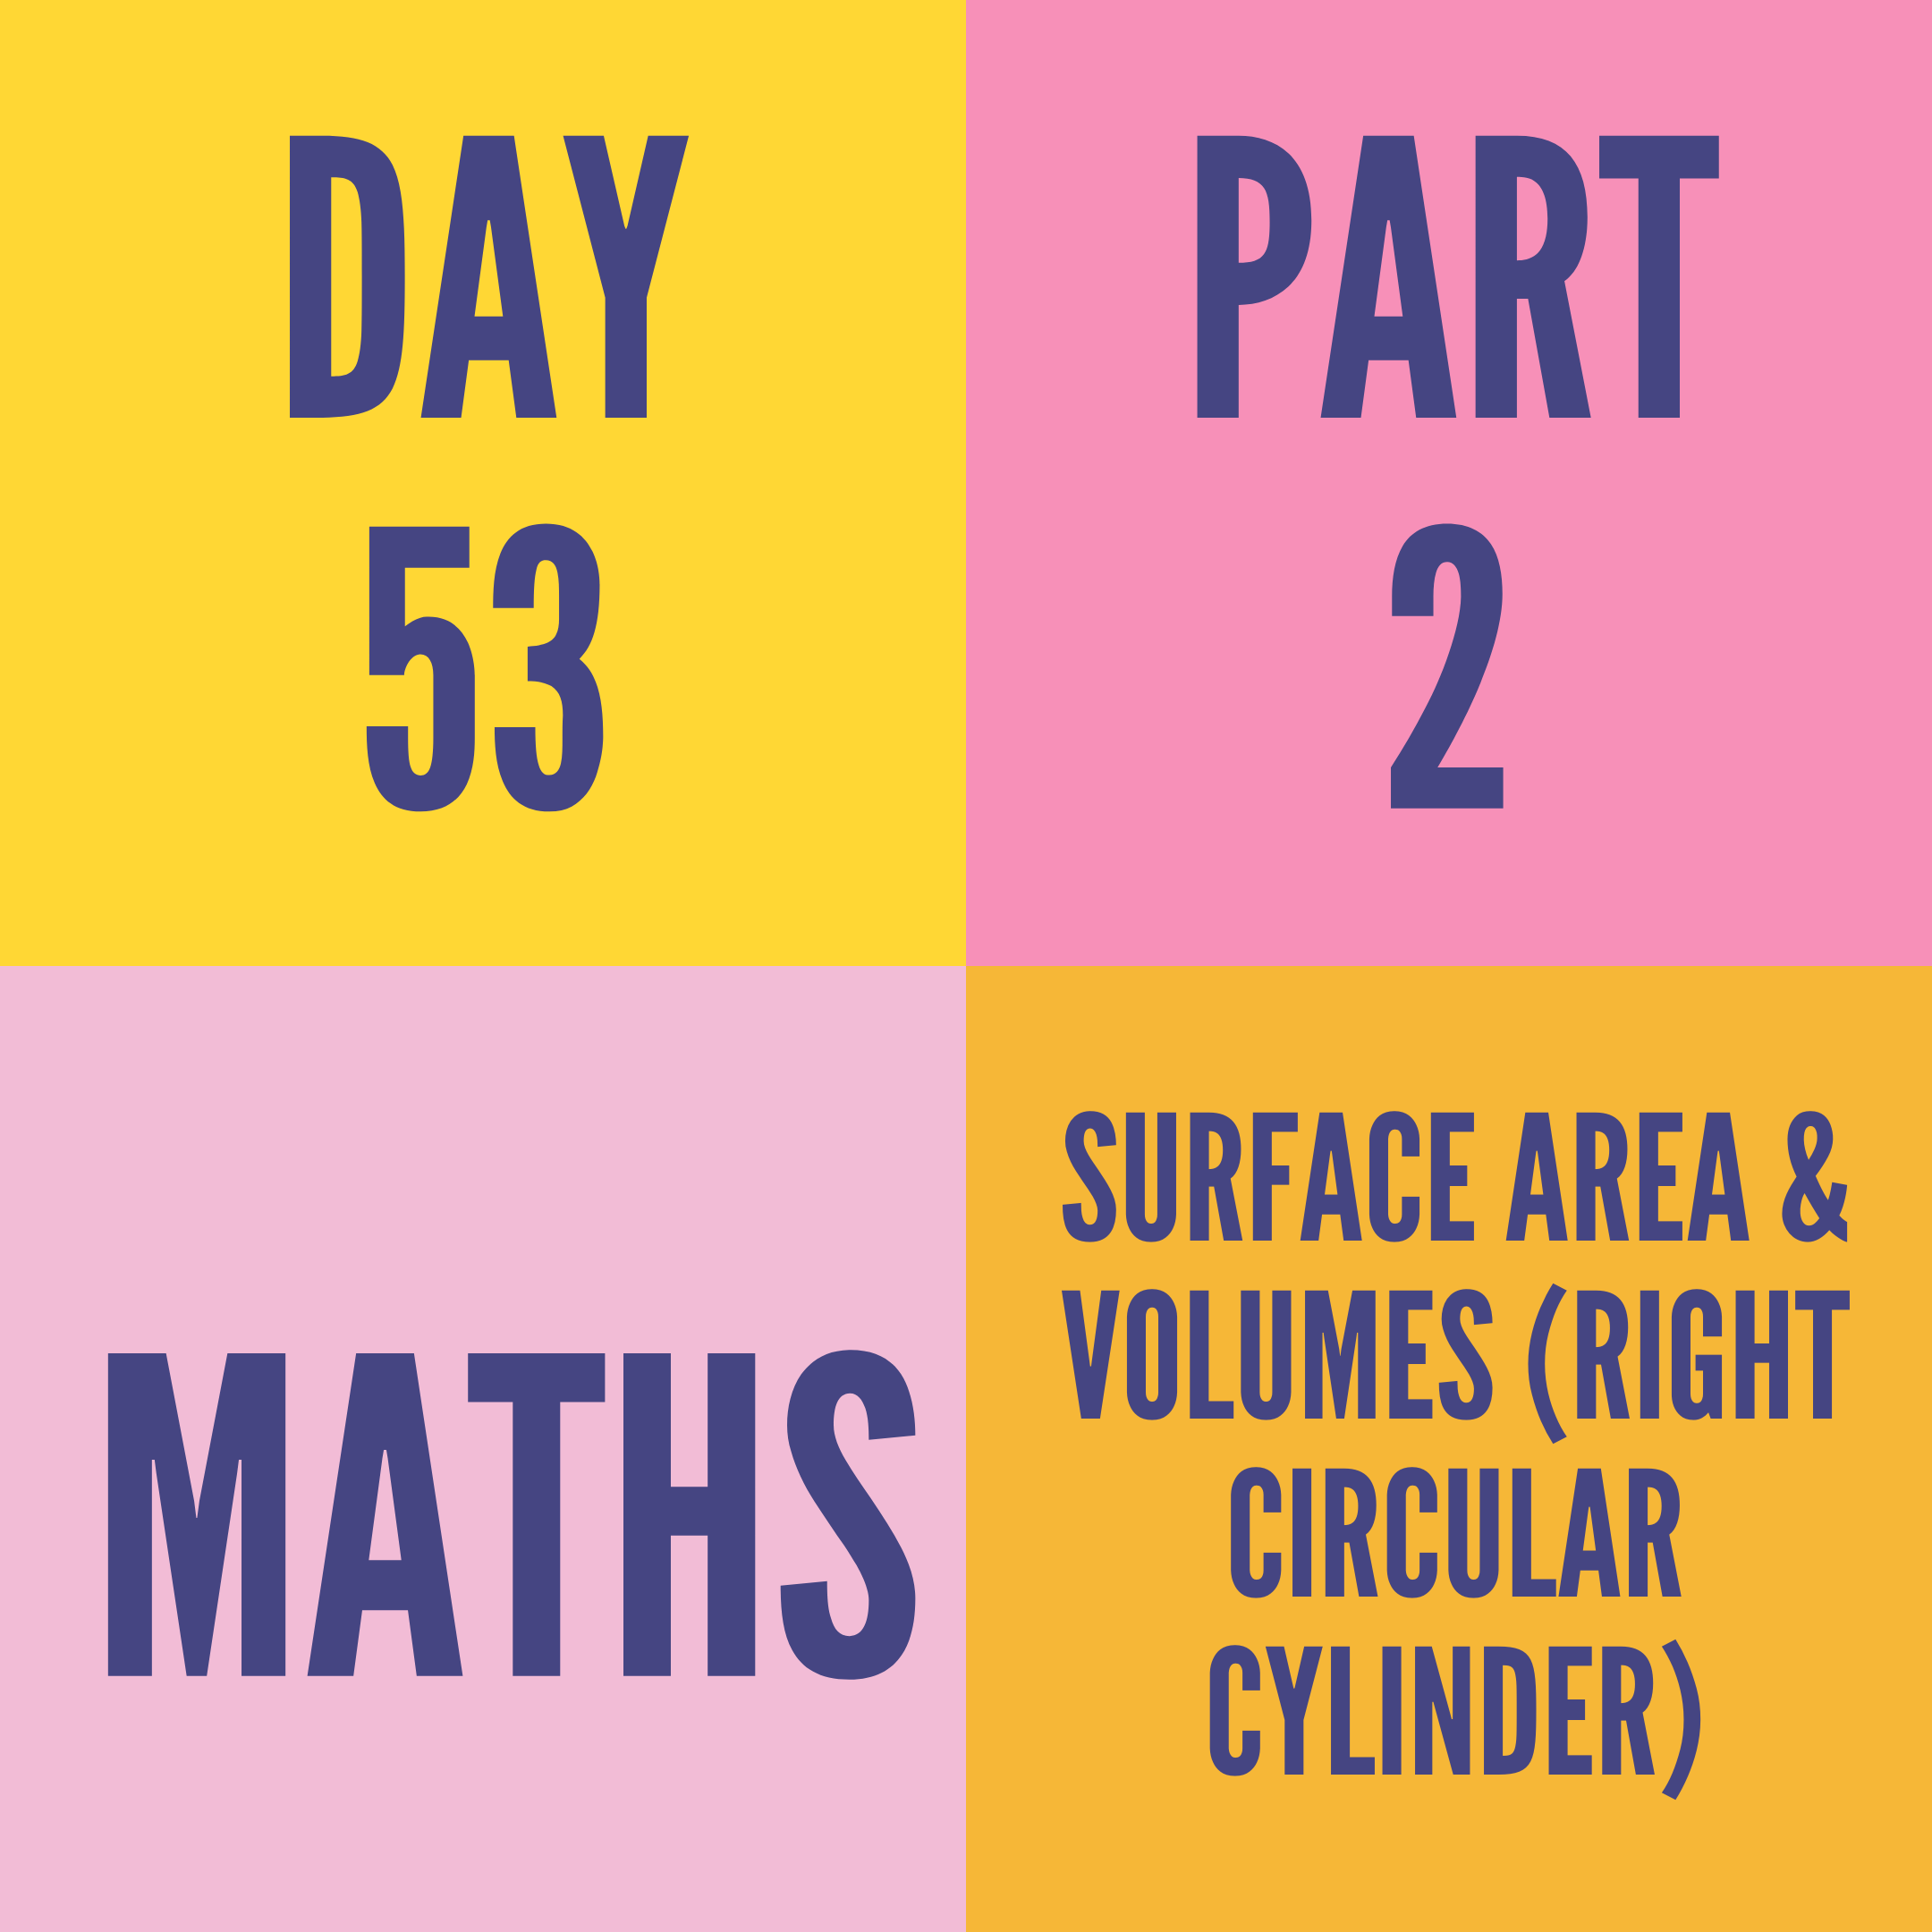 DAY-53 PART-2 SURFACE AREA & VOLUMES (RIGHT CIRCULAR CYLINDER)